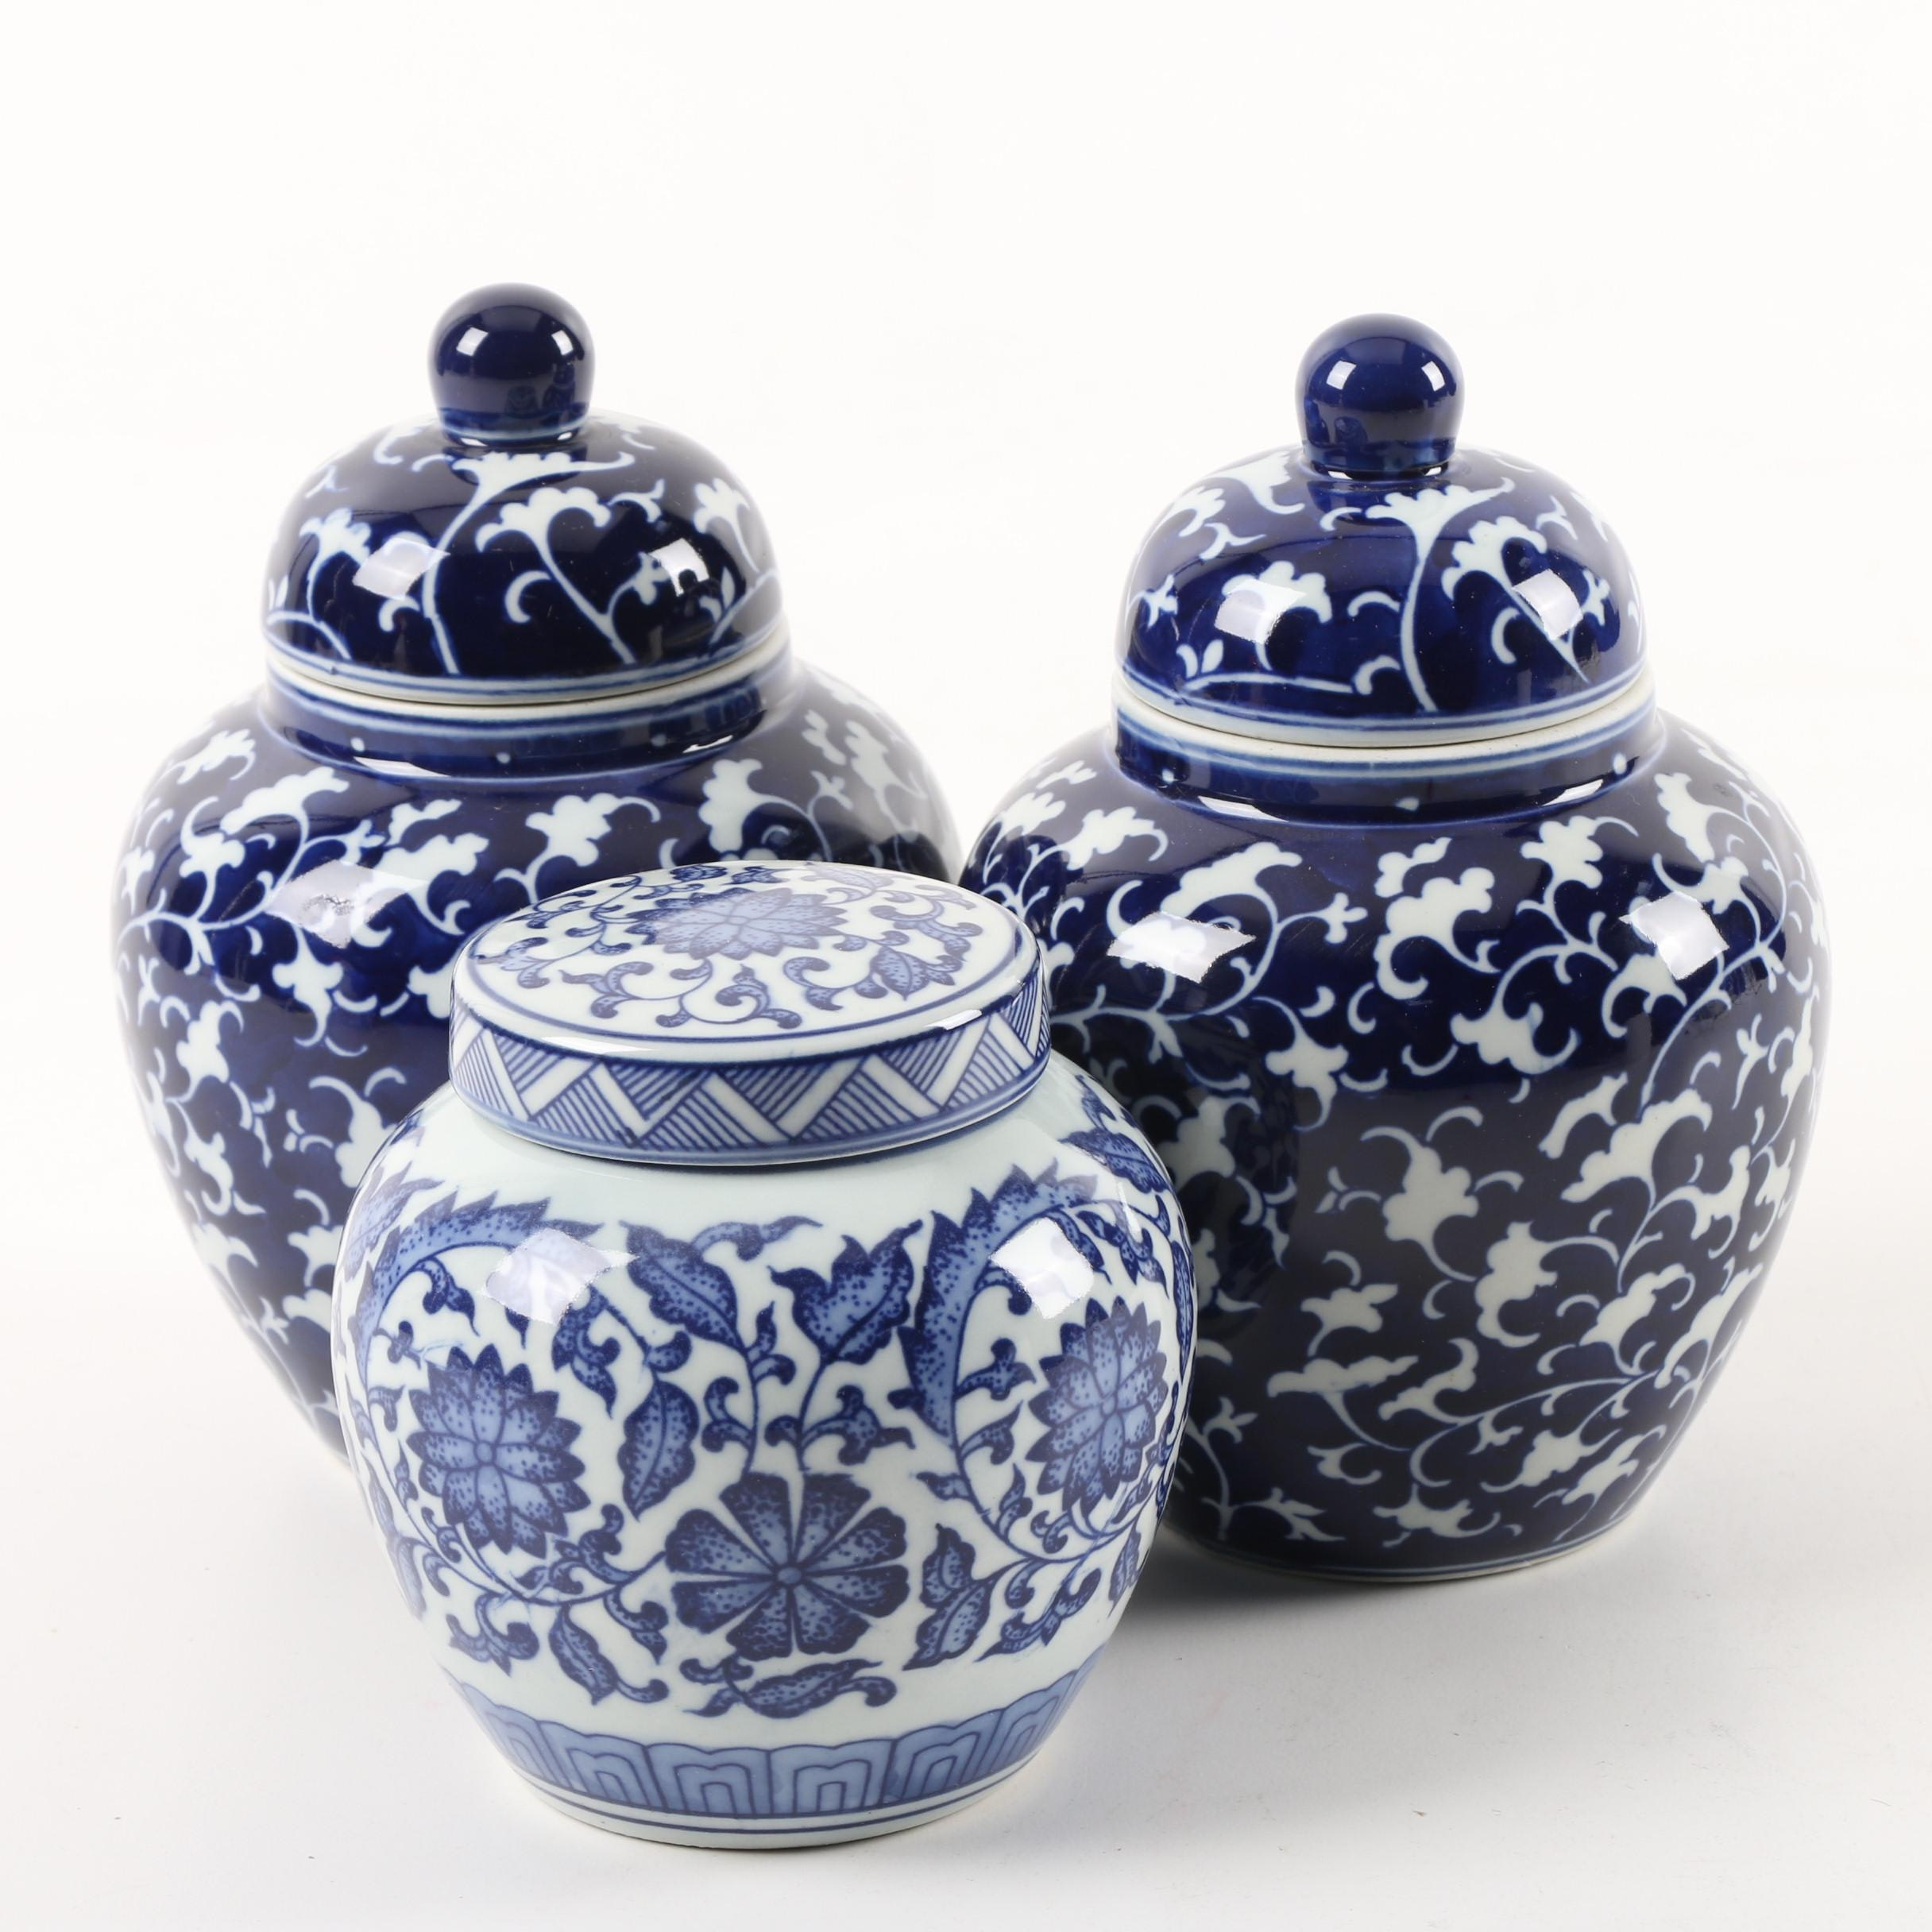 Williams-Sonoma Home Contemporary Blue and White Ginger Jars